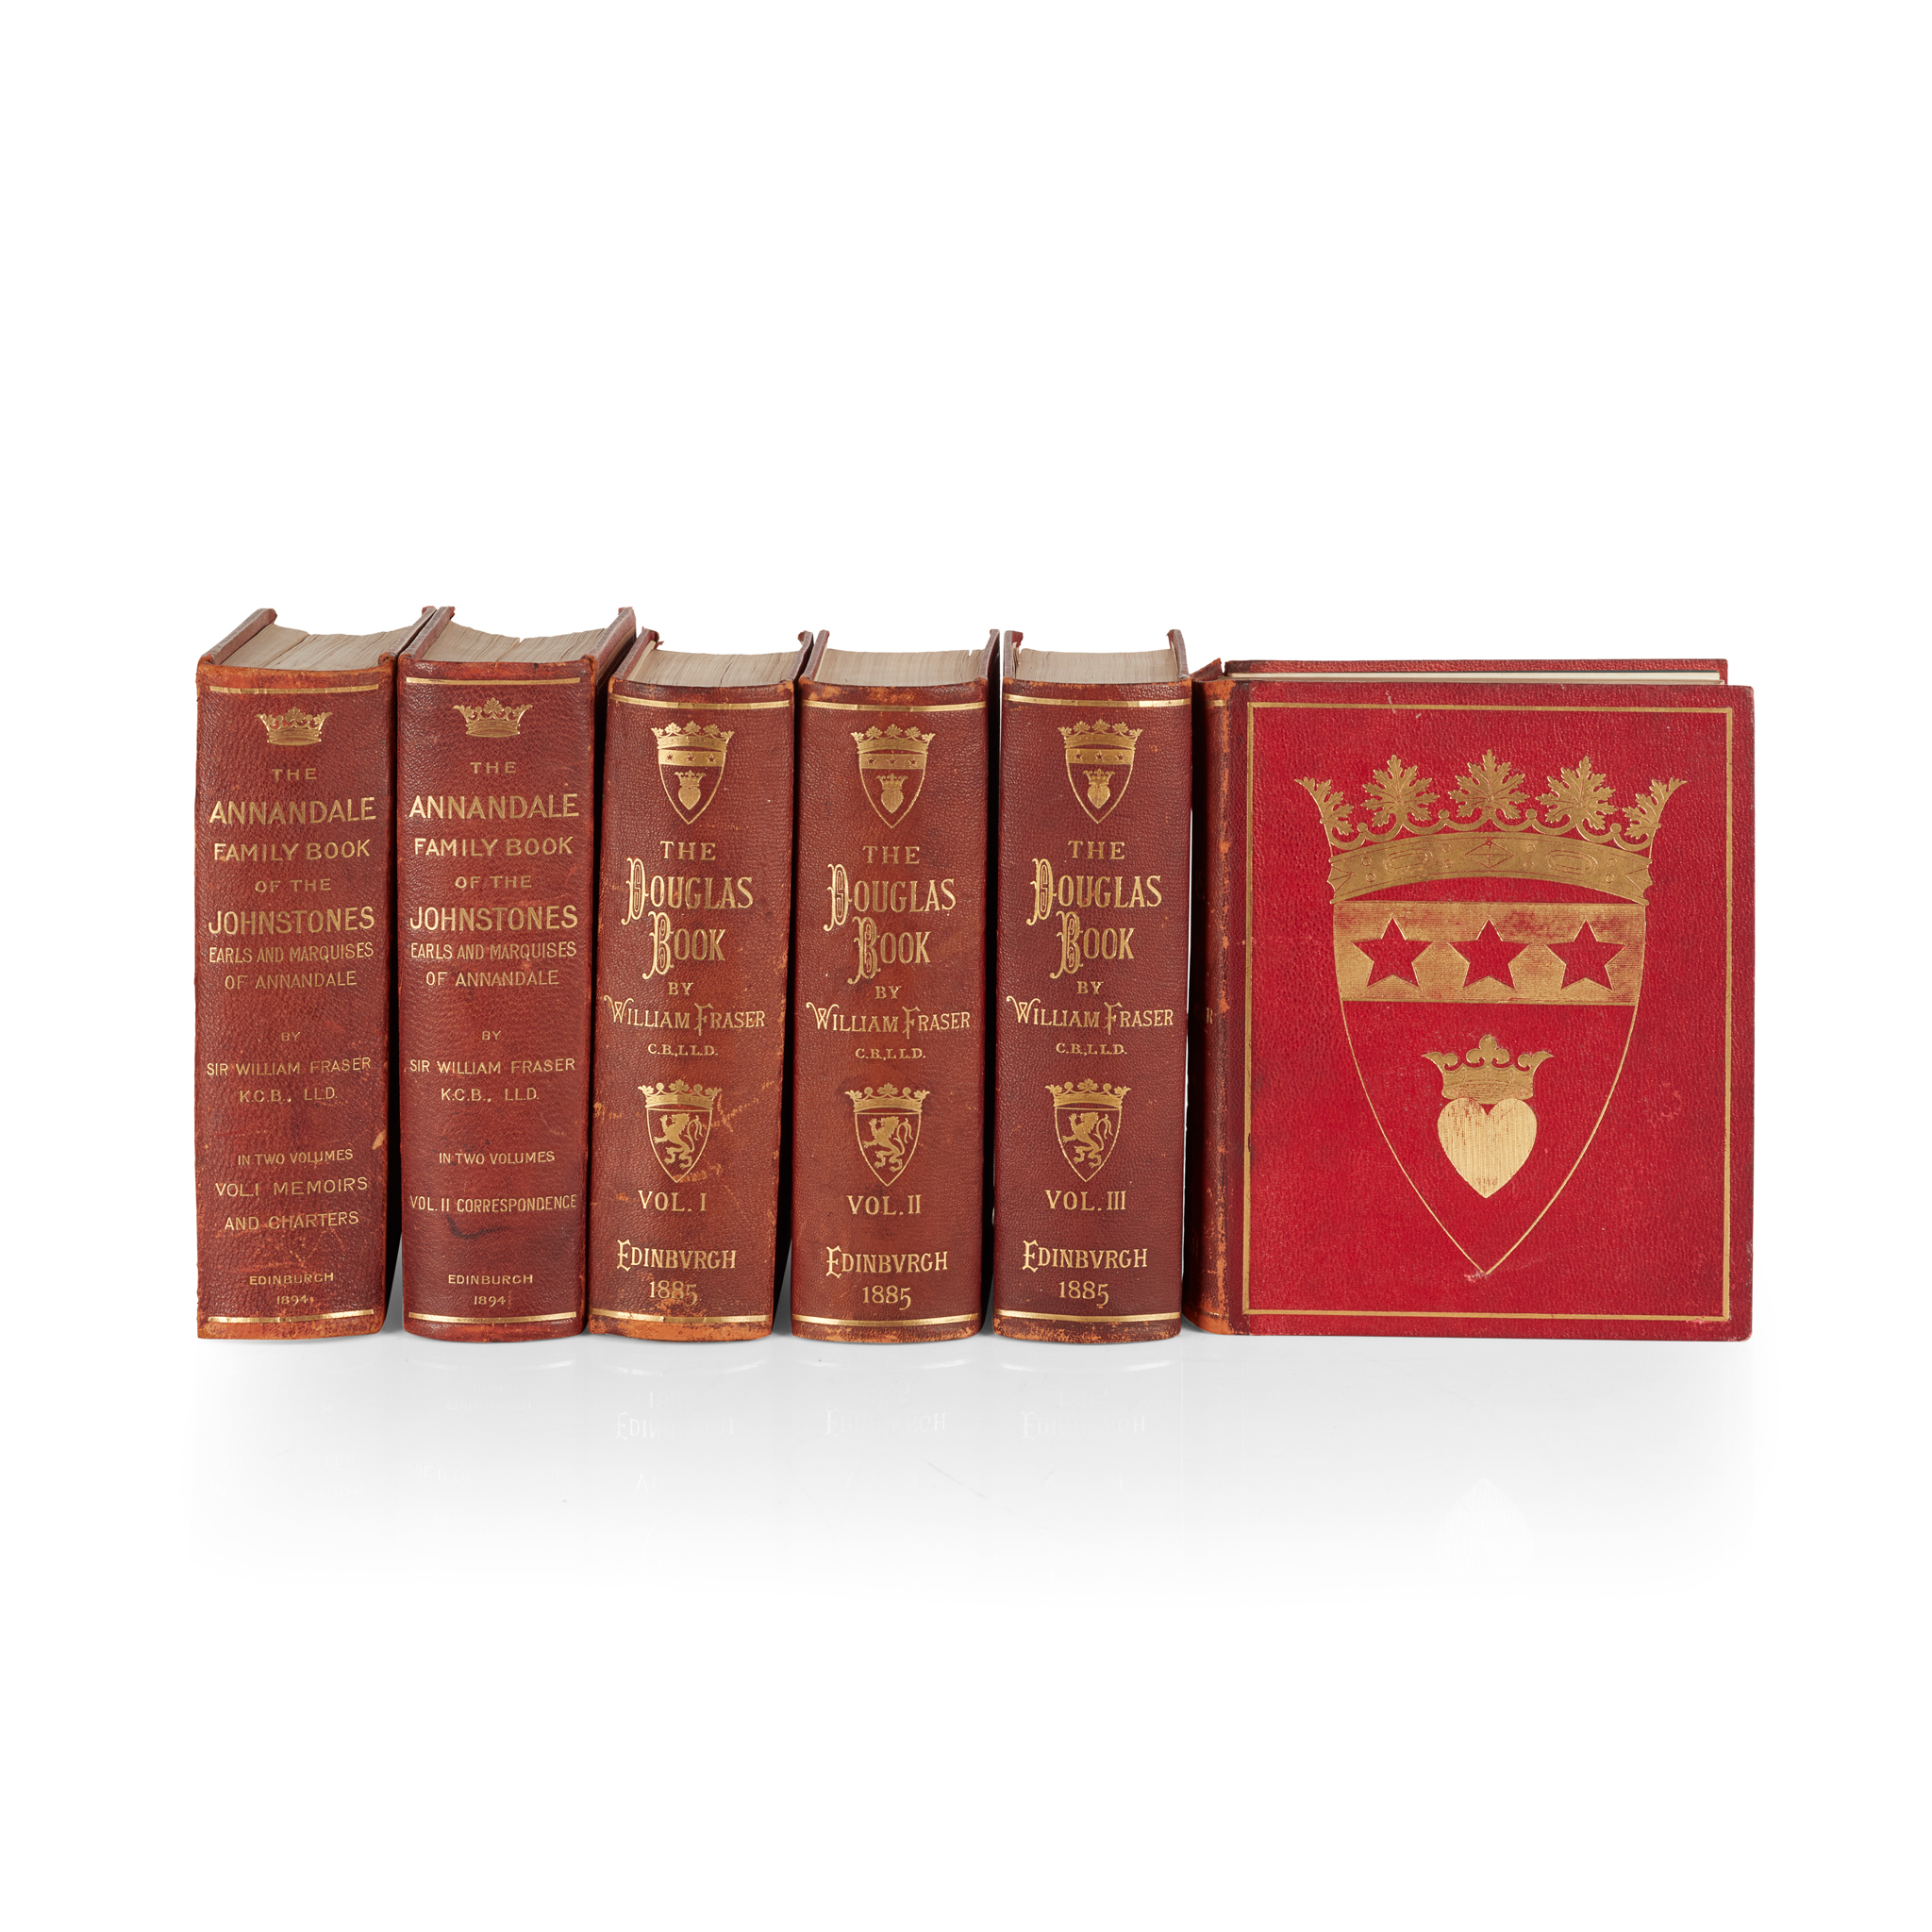 Fraser, Sir William The Douglas Book. Edinburgh, 1885 4 volumes, 4to, plates, lithographed and